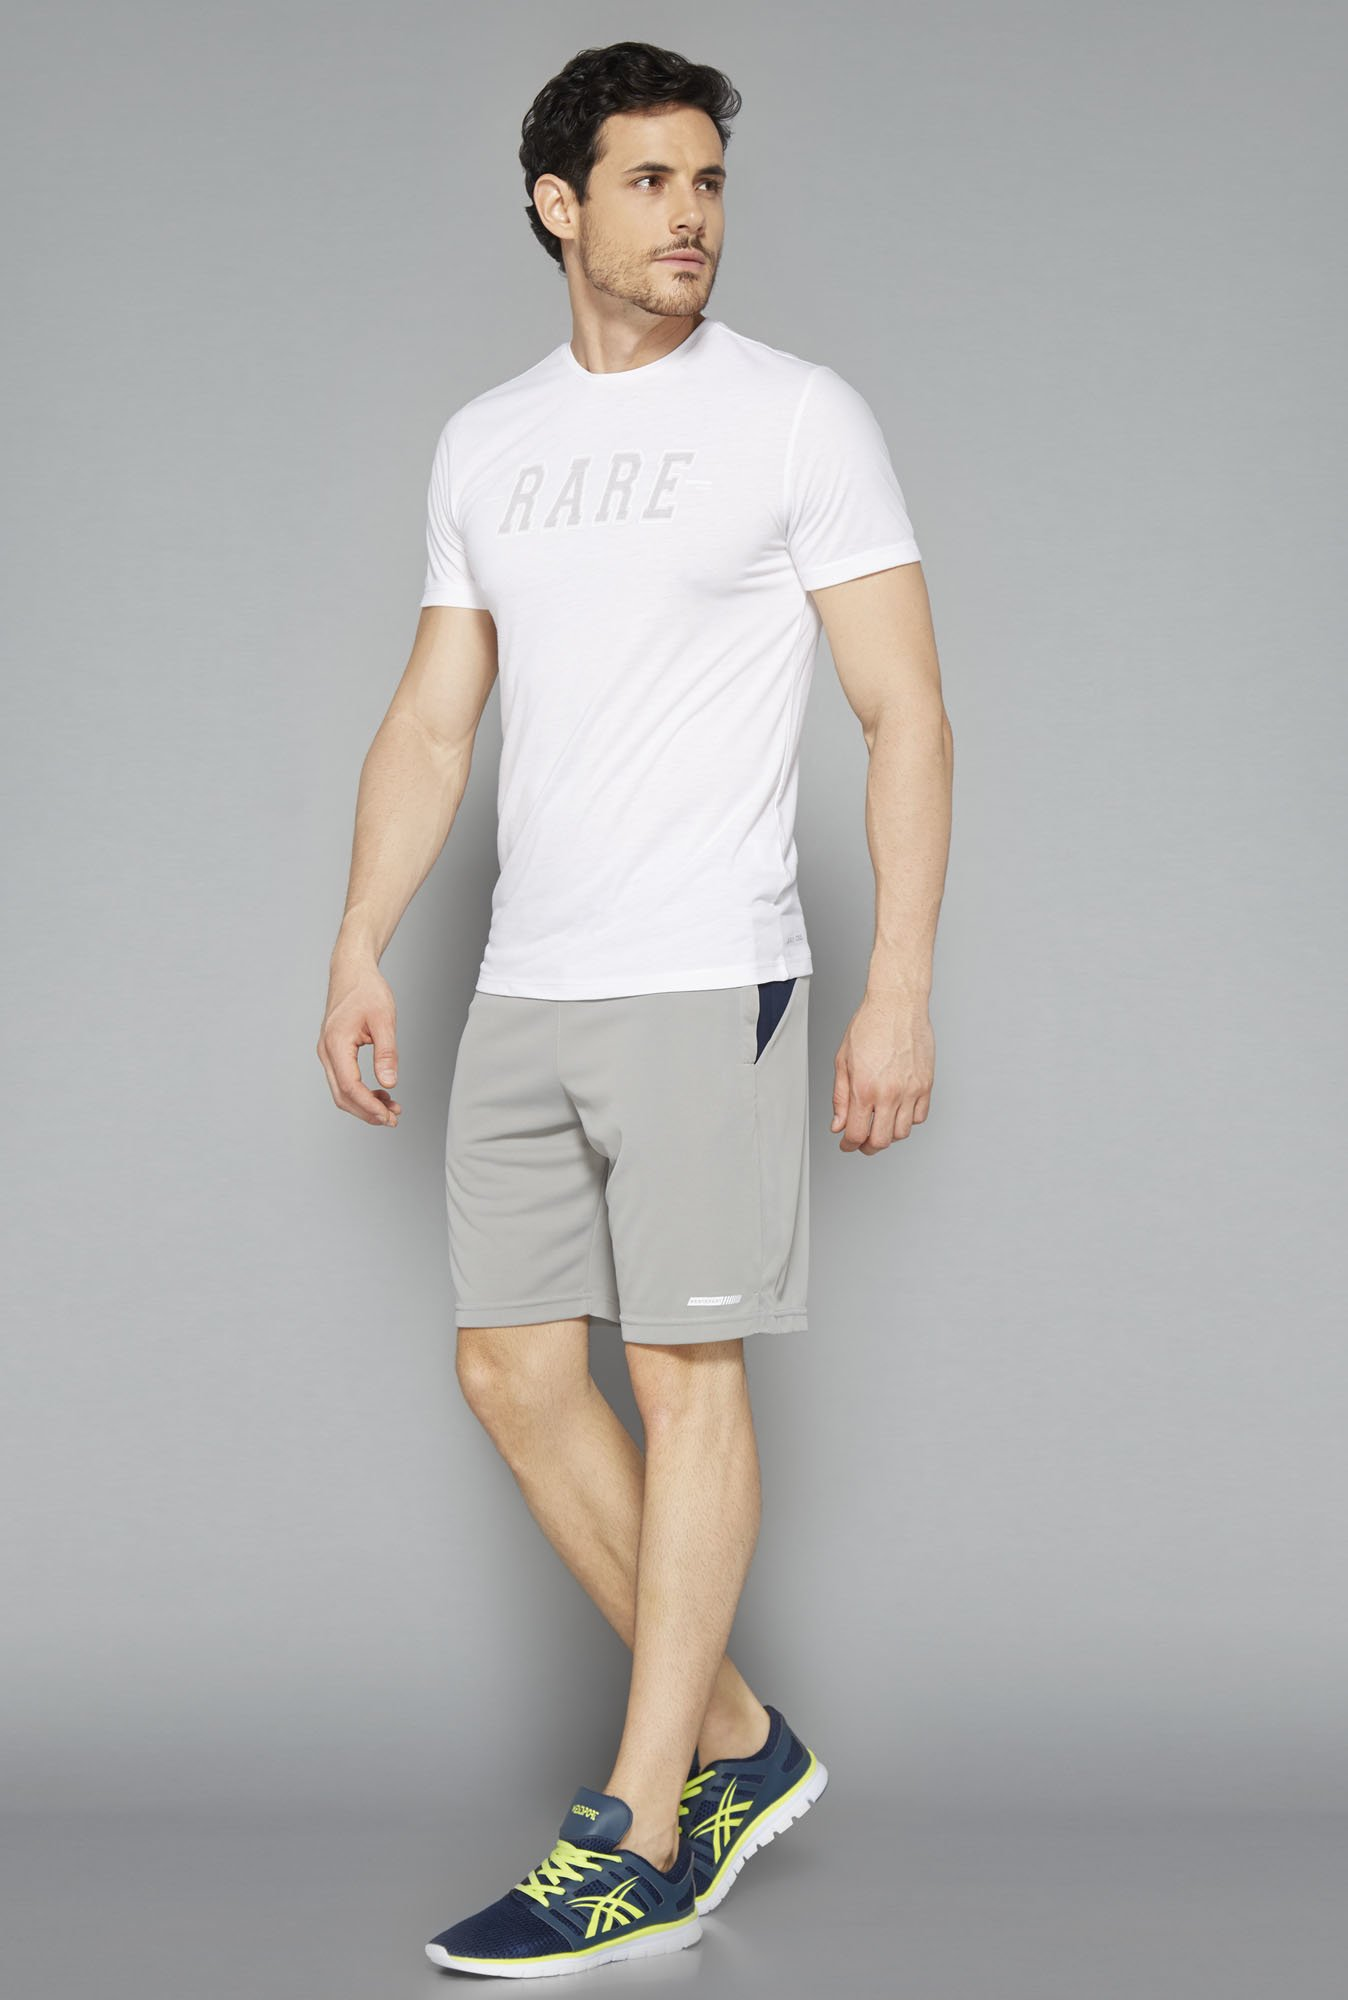 Westsport Active White Printed T Shirt